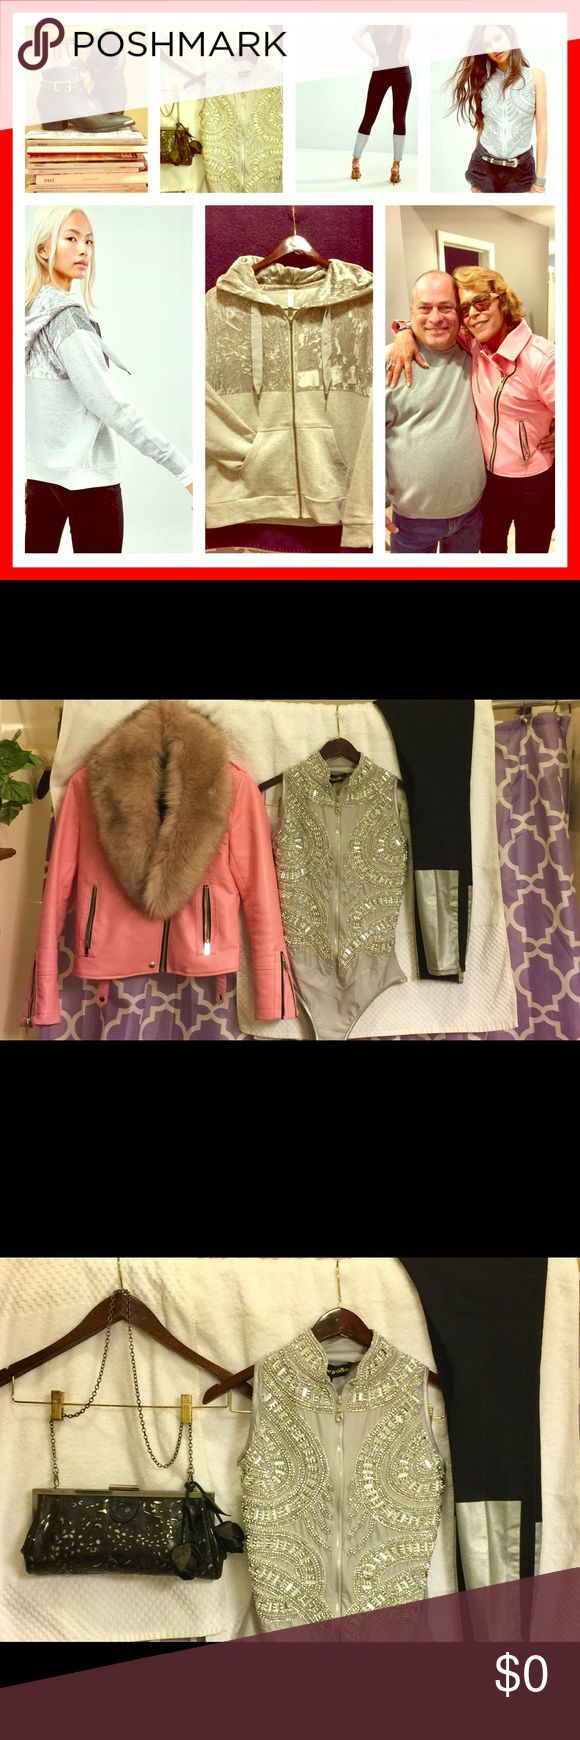 Calvin Klein boots,Black and silver jeans, ect. Calvin Klein ankle boots, Silver embellished zip up bodysuit, Black and silver jeans velvet gray hoodie, Pink leather Moto jacket with or with out pink fur !!! NOT FOR SALE Calvin Klein Collection Other